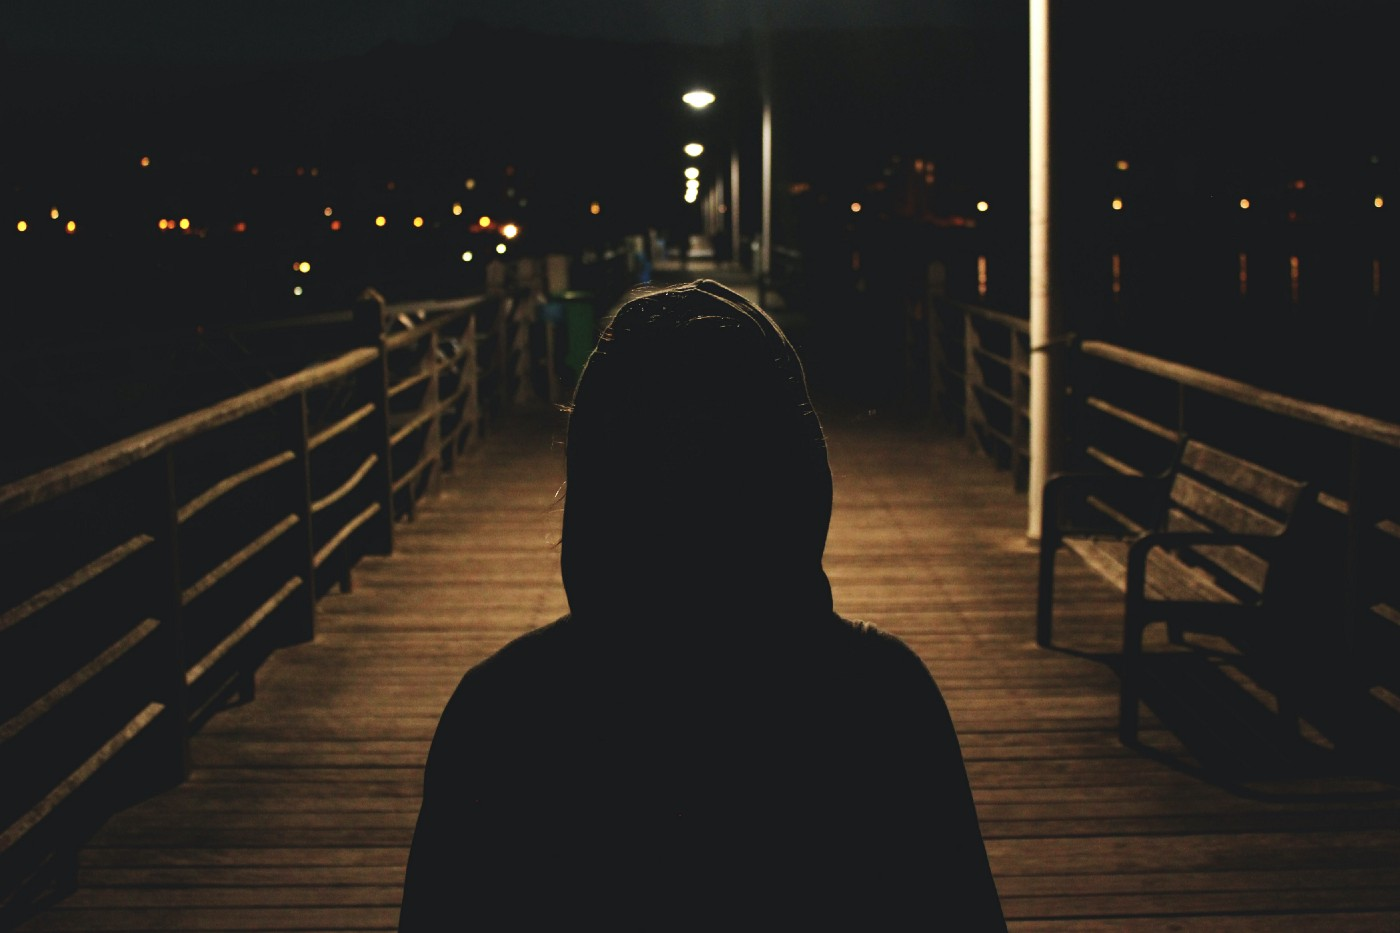 A person wearing a hoodie in a shadow, standing on a boardwalk at night.